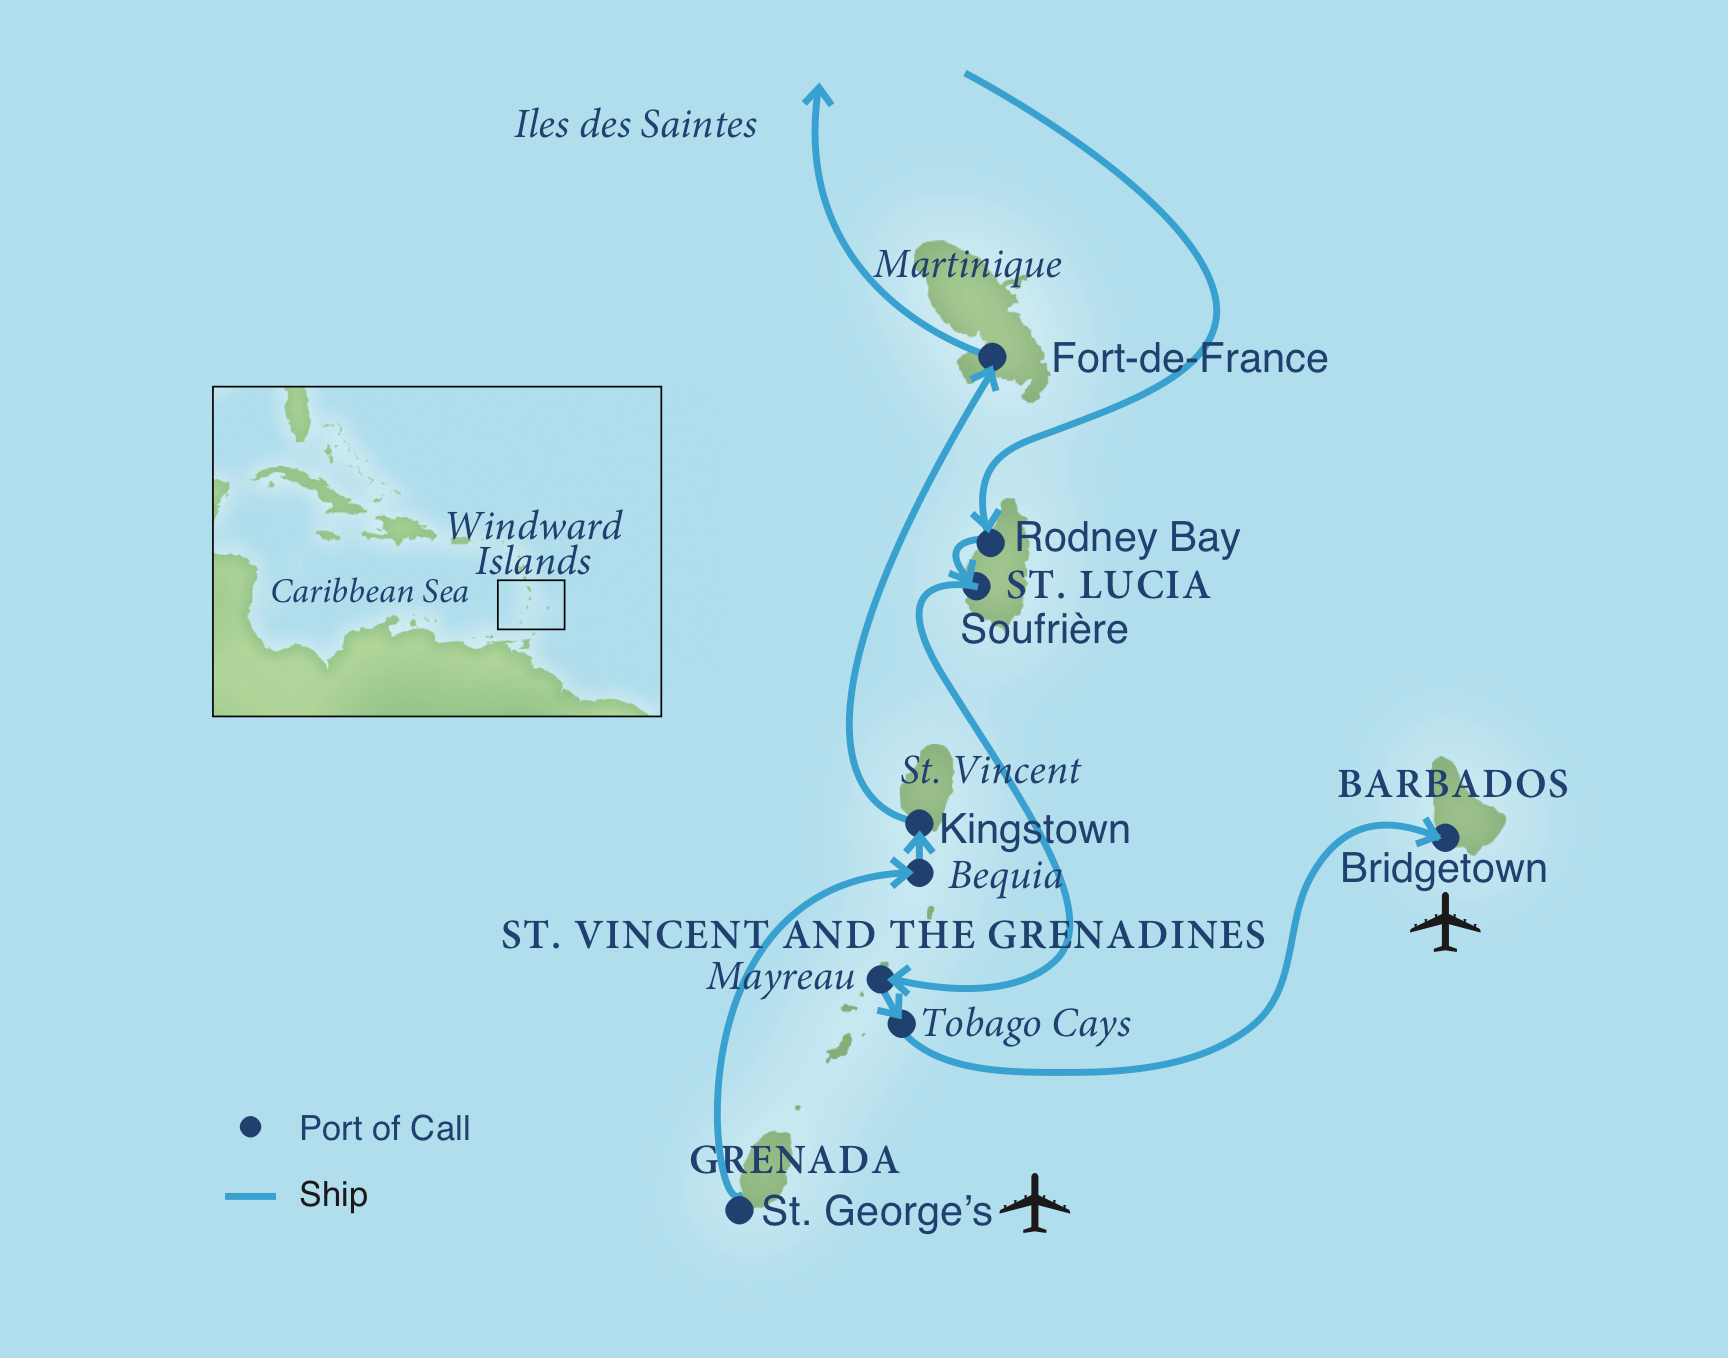 image about Printable Map of Caribbean Islands identify Cruising the Caribbeans Windward Islands Smithsonian Excursions